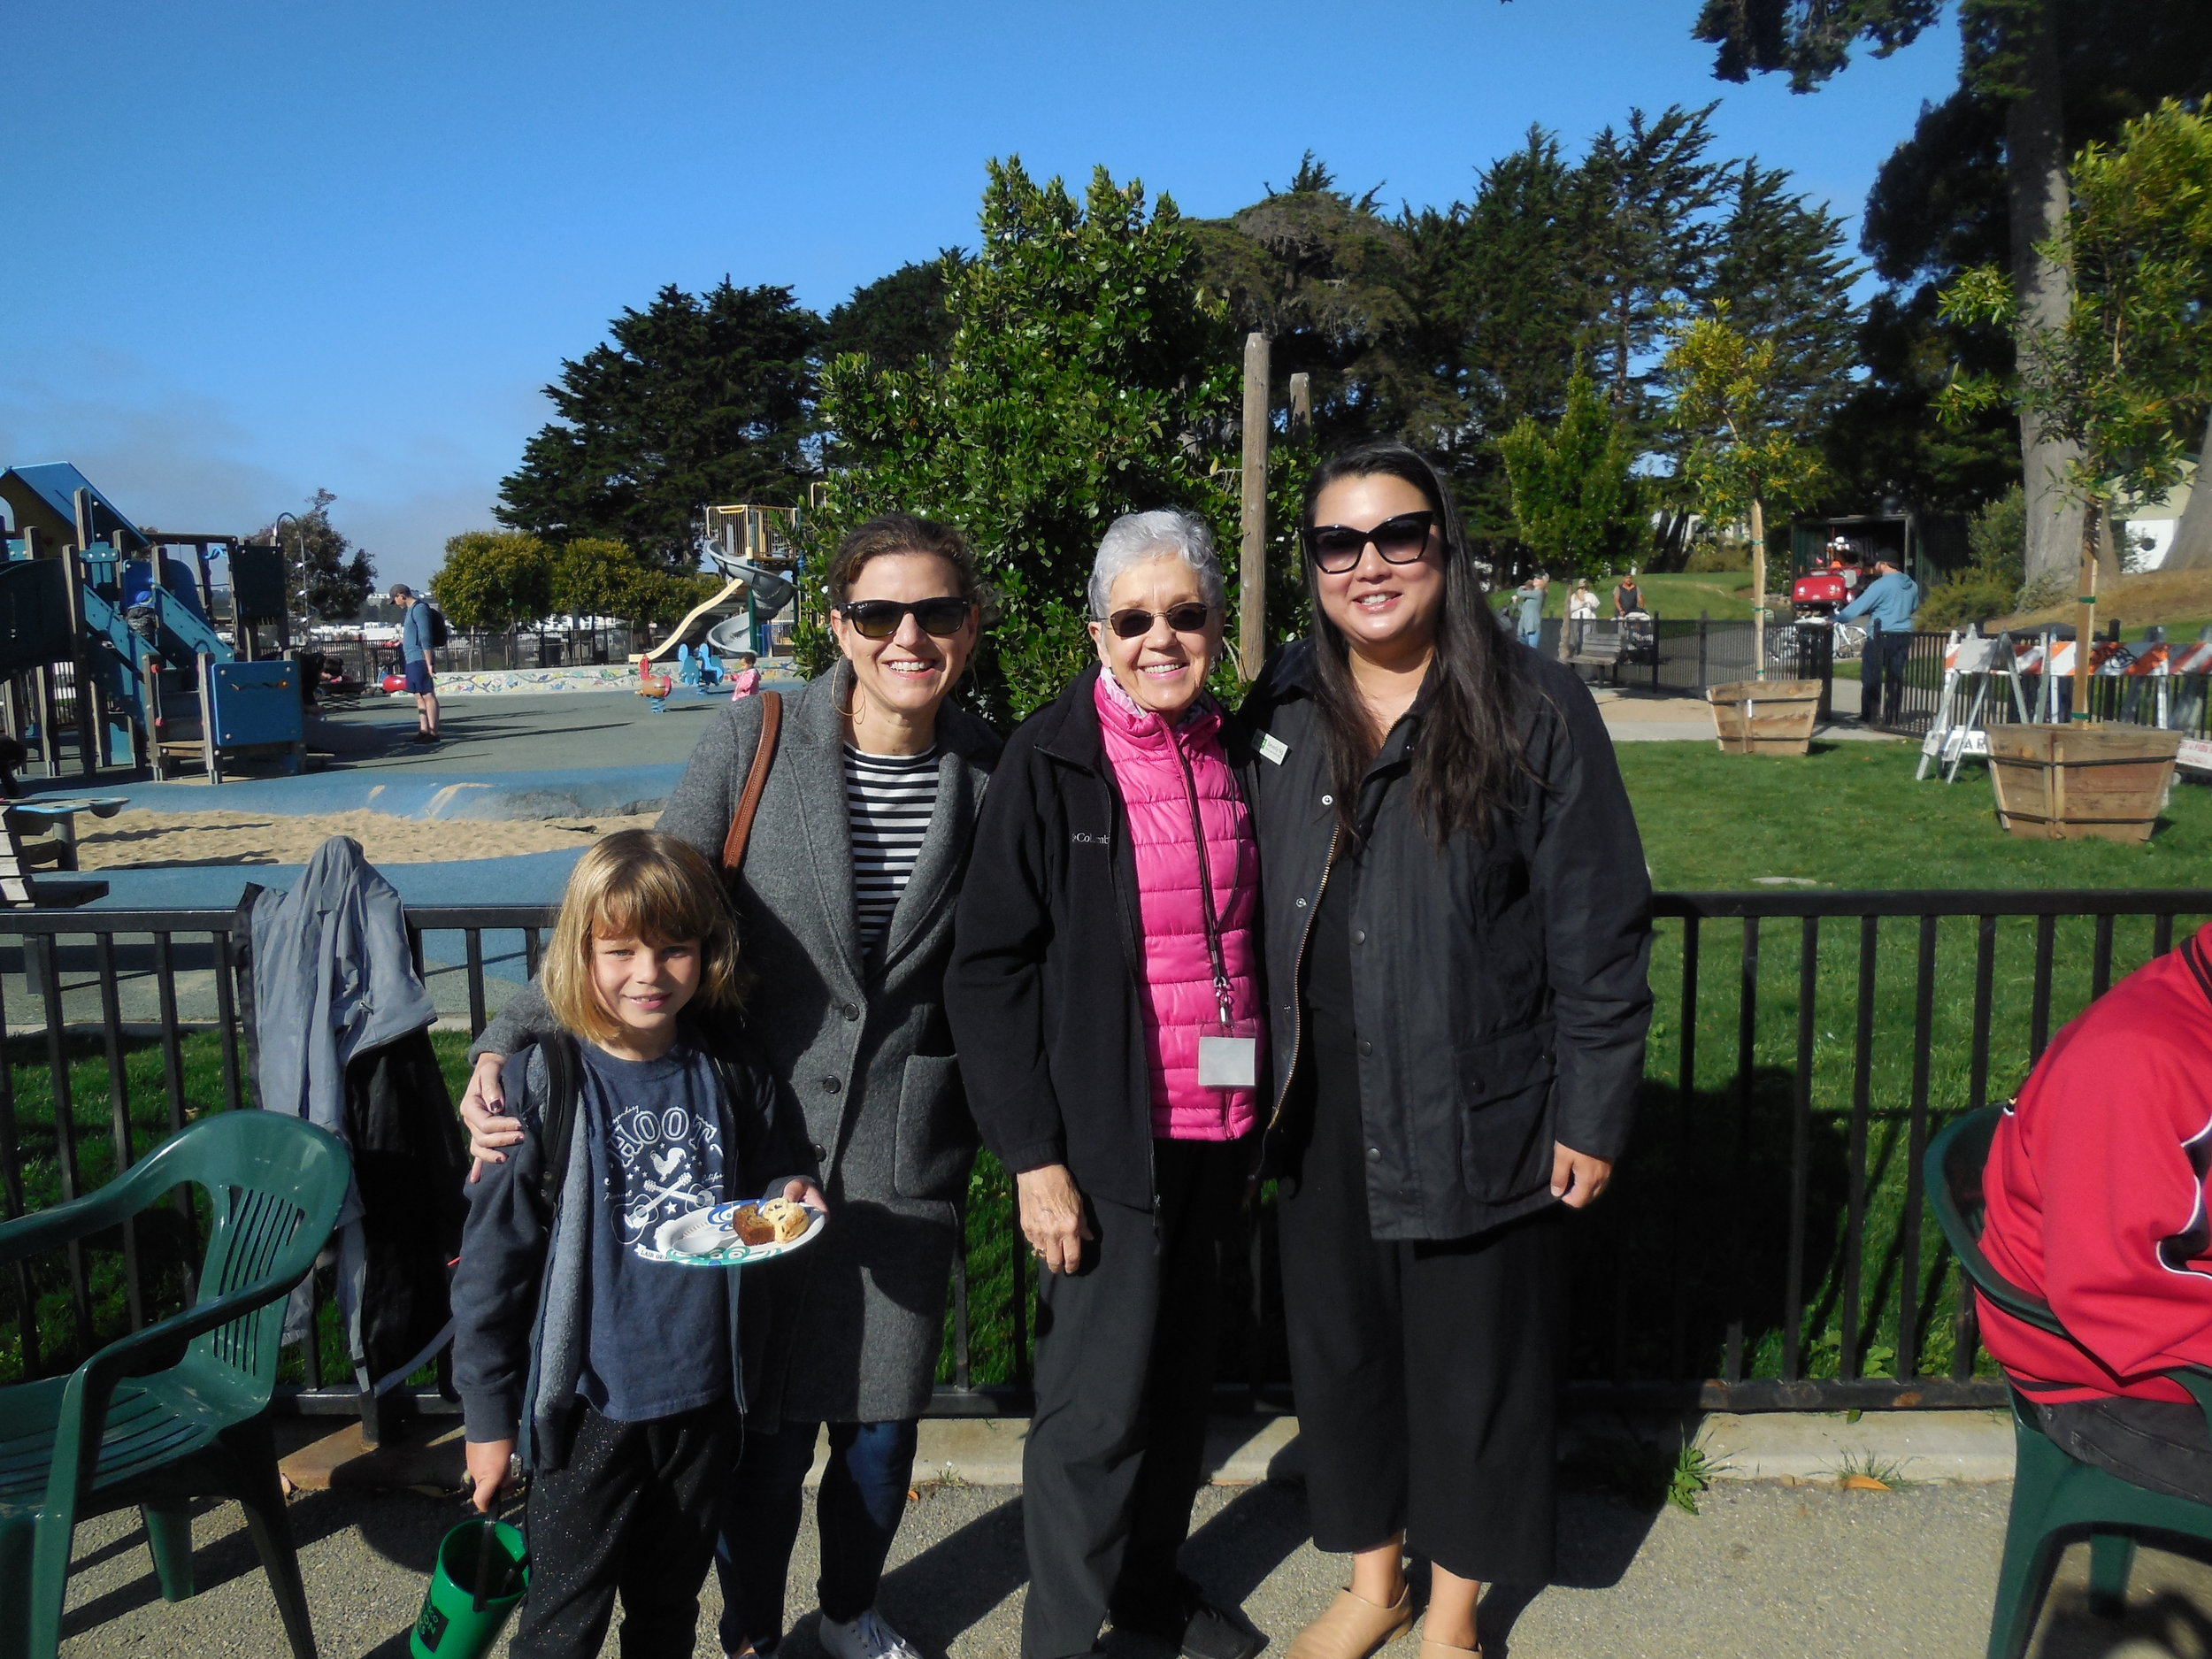 Abigail Maher with daughter and Beverly Ng of SFRPD, with Anita Denz of the Friends of Alta Plaza Park